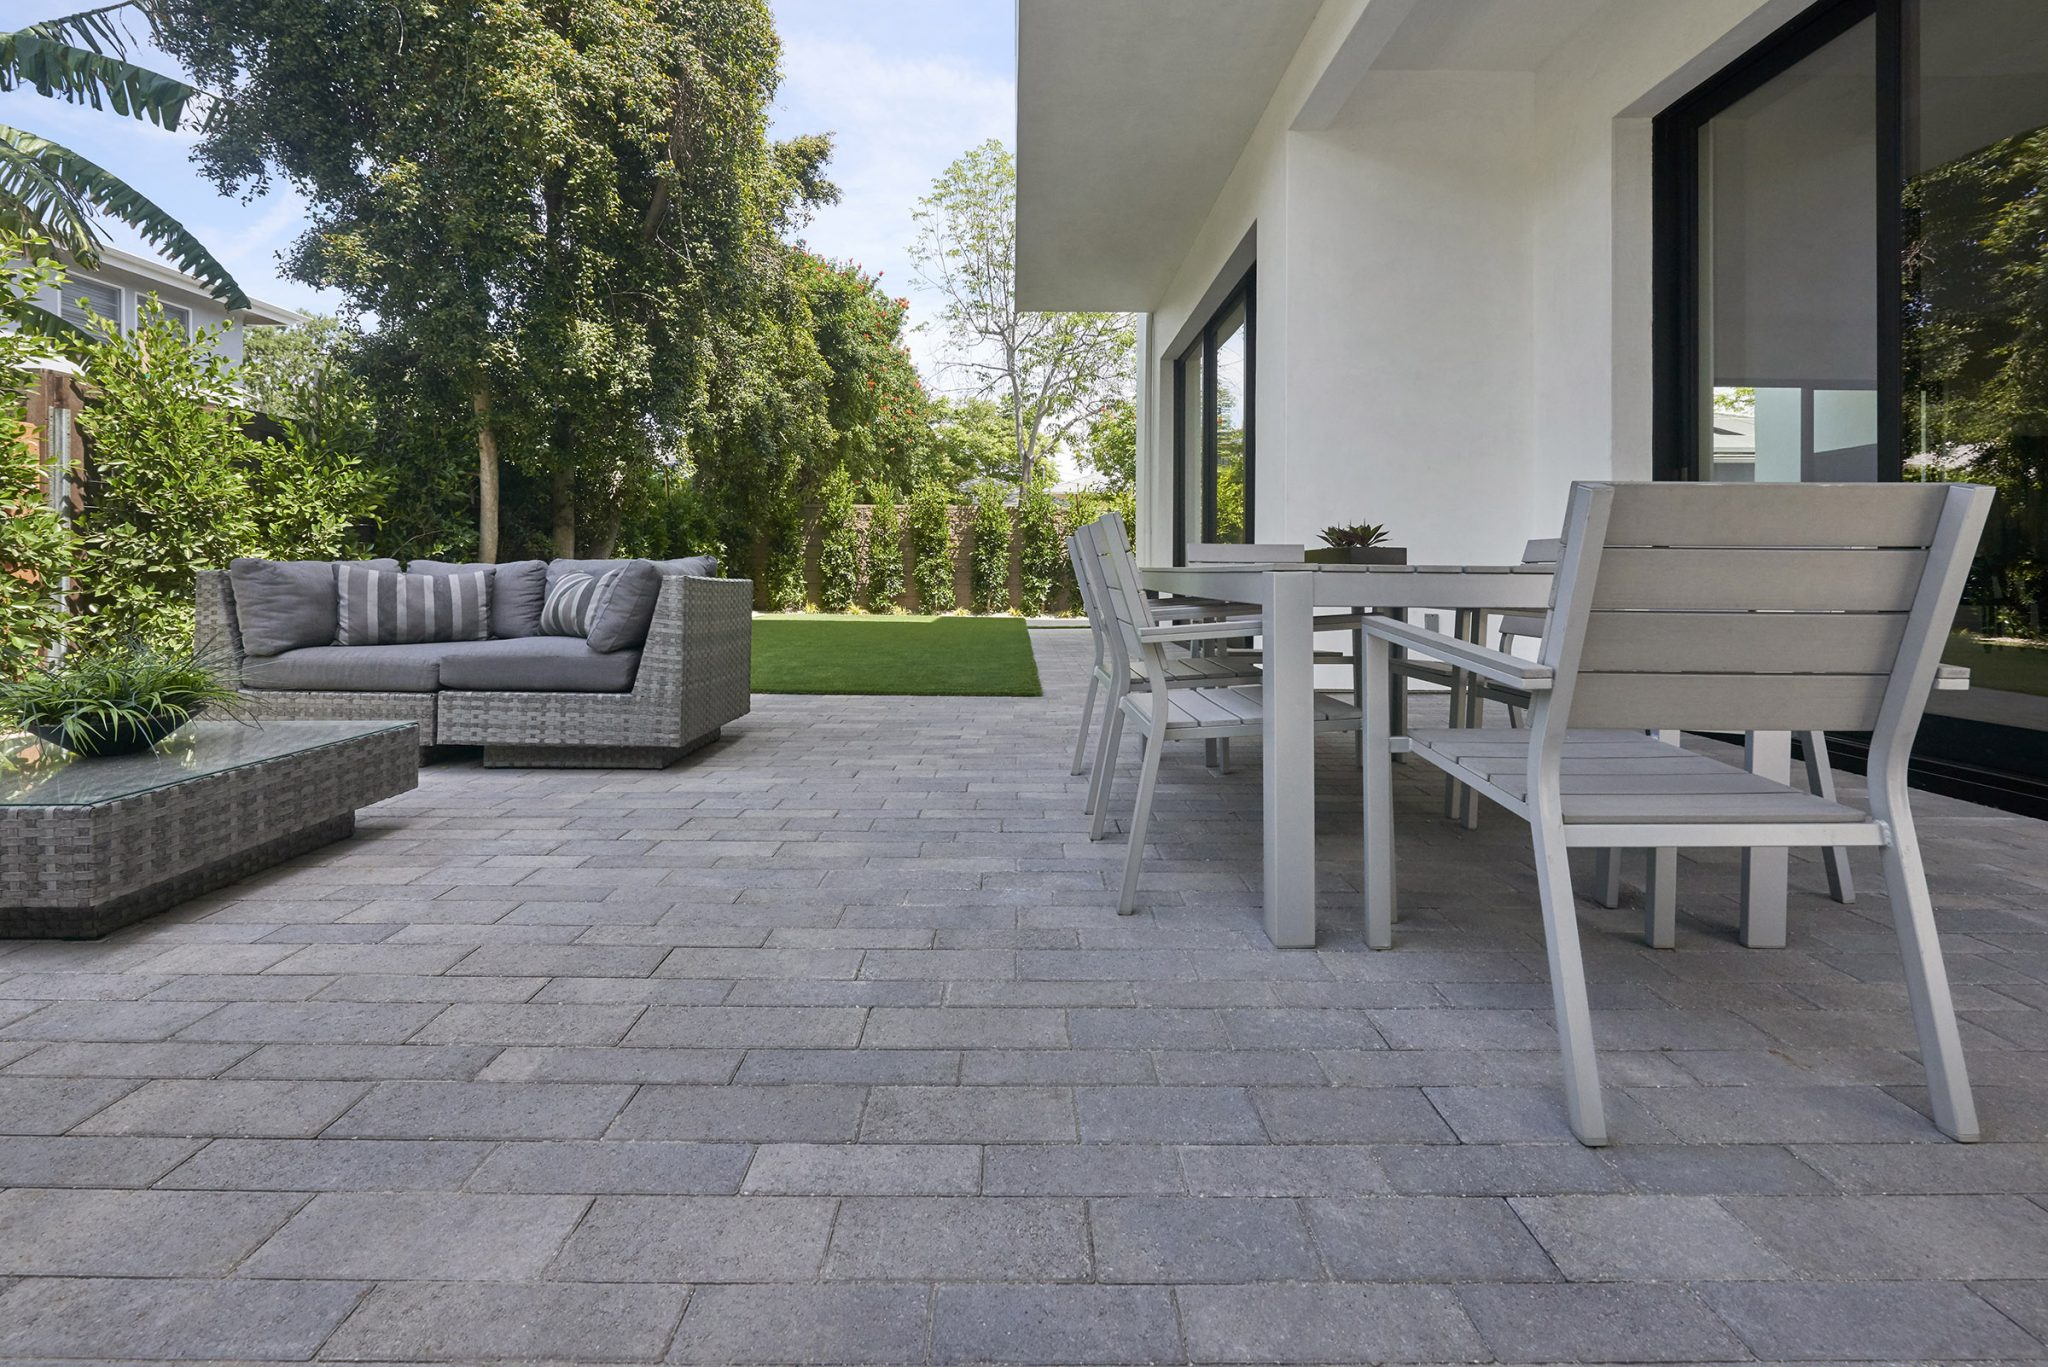 Pavers Cost - 2019 Installation Price Guide | INSTALL-IT-DIRECT